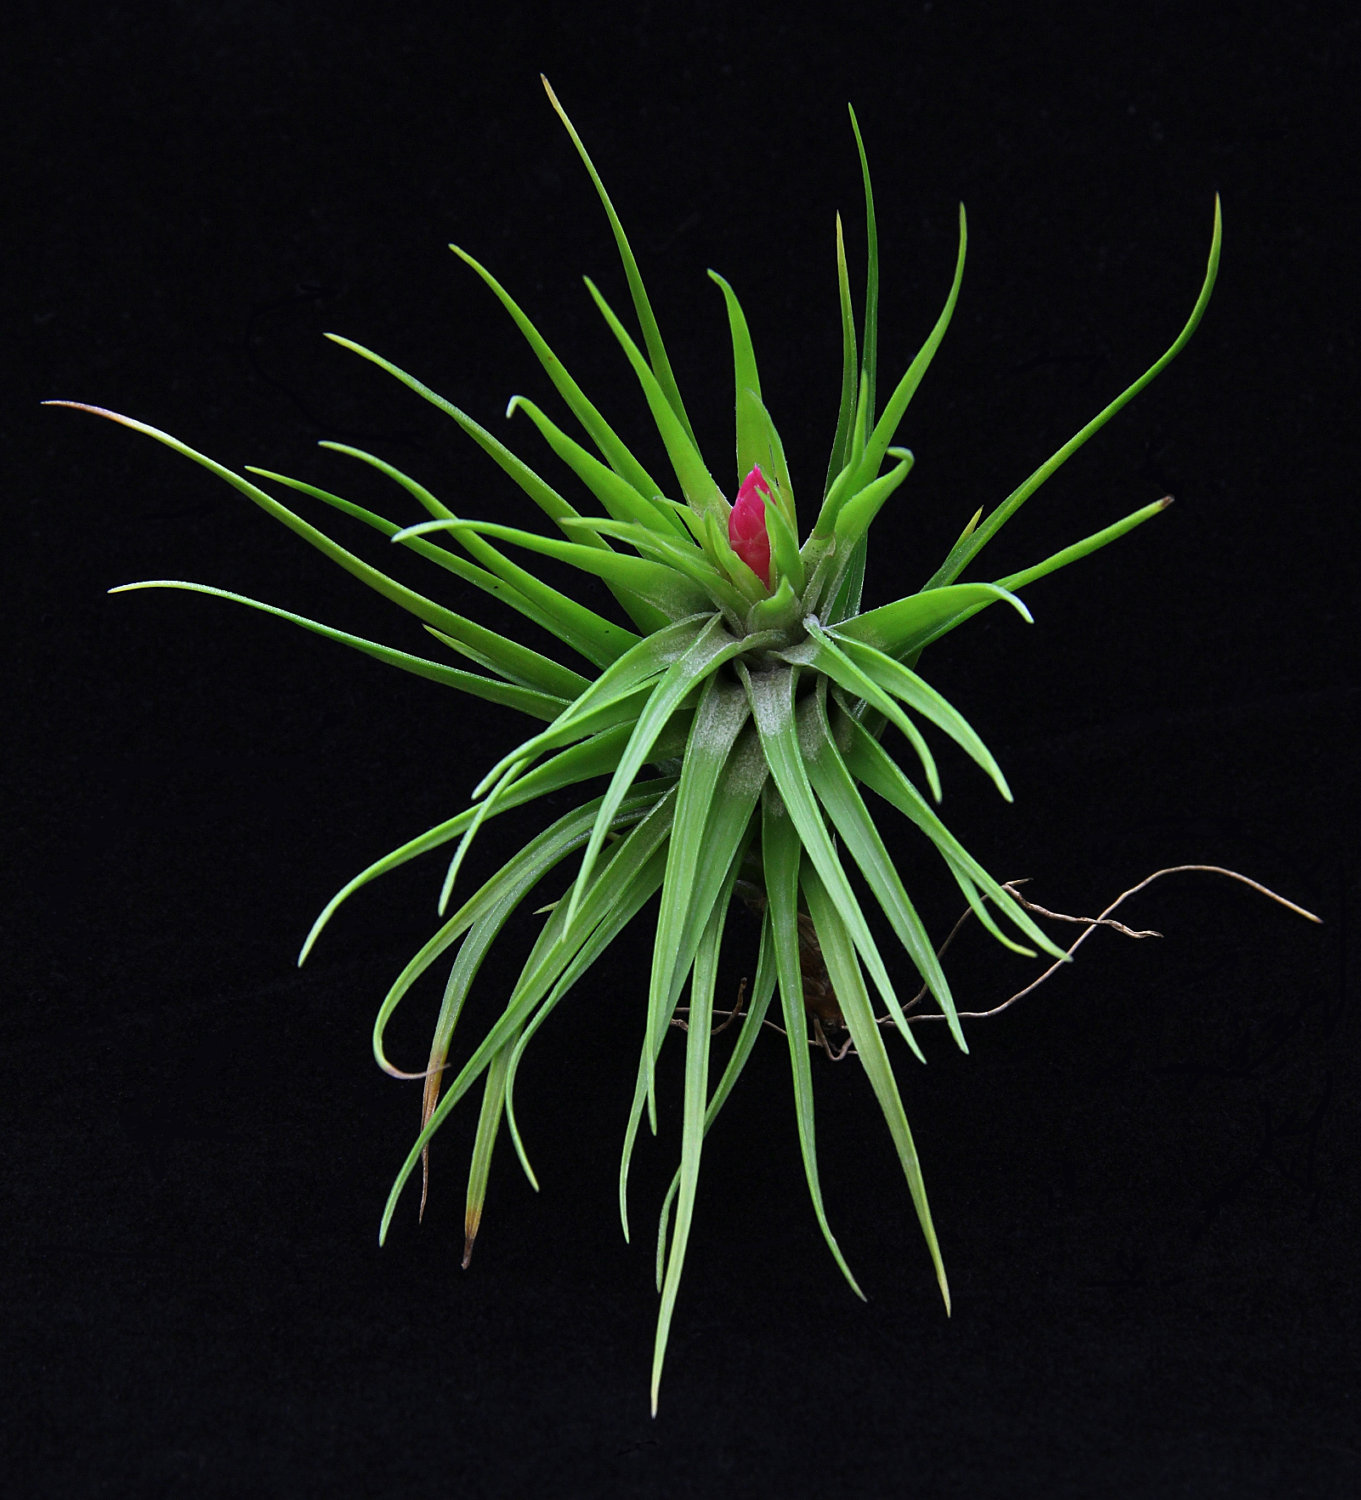 Tillandsia Tenuifolia from Etsy shop Plant Odditioes